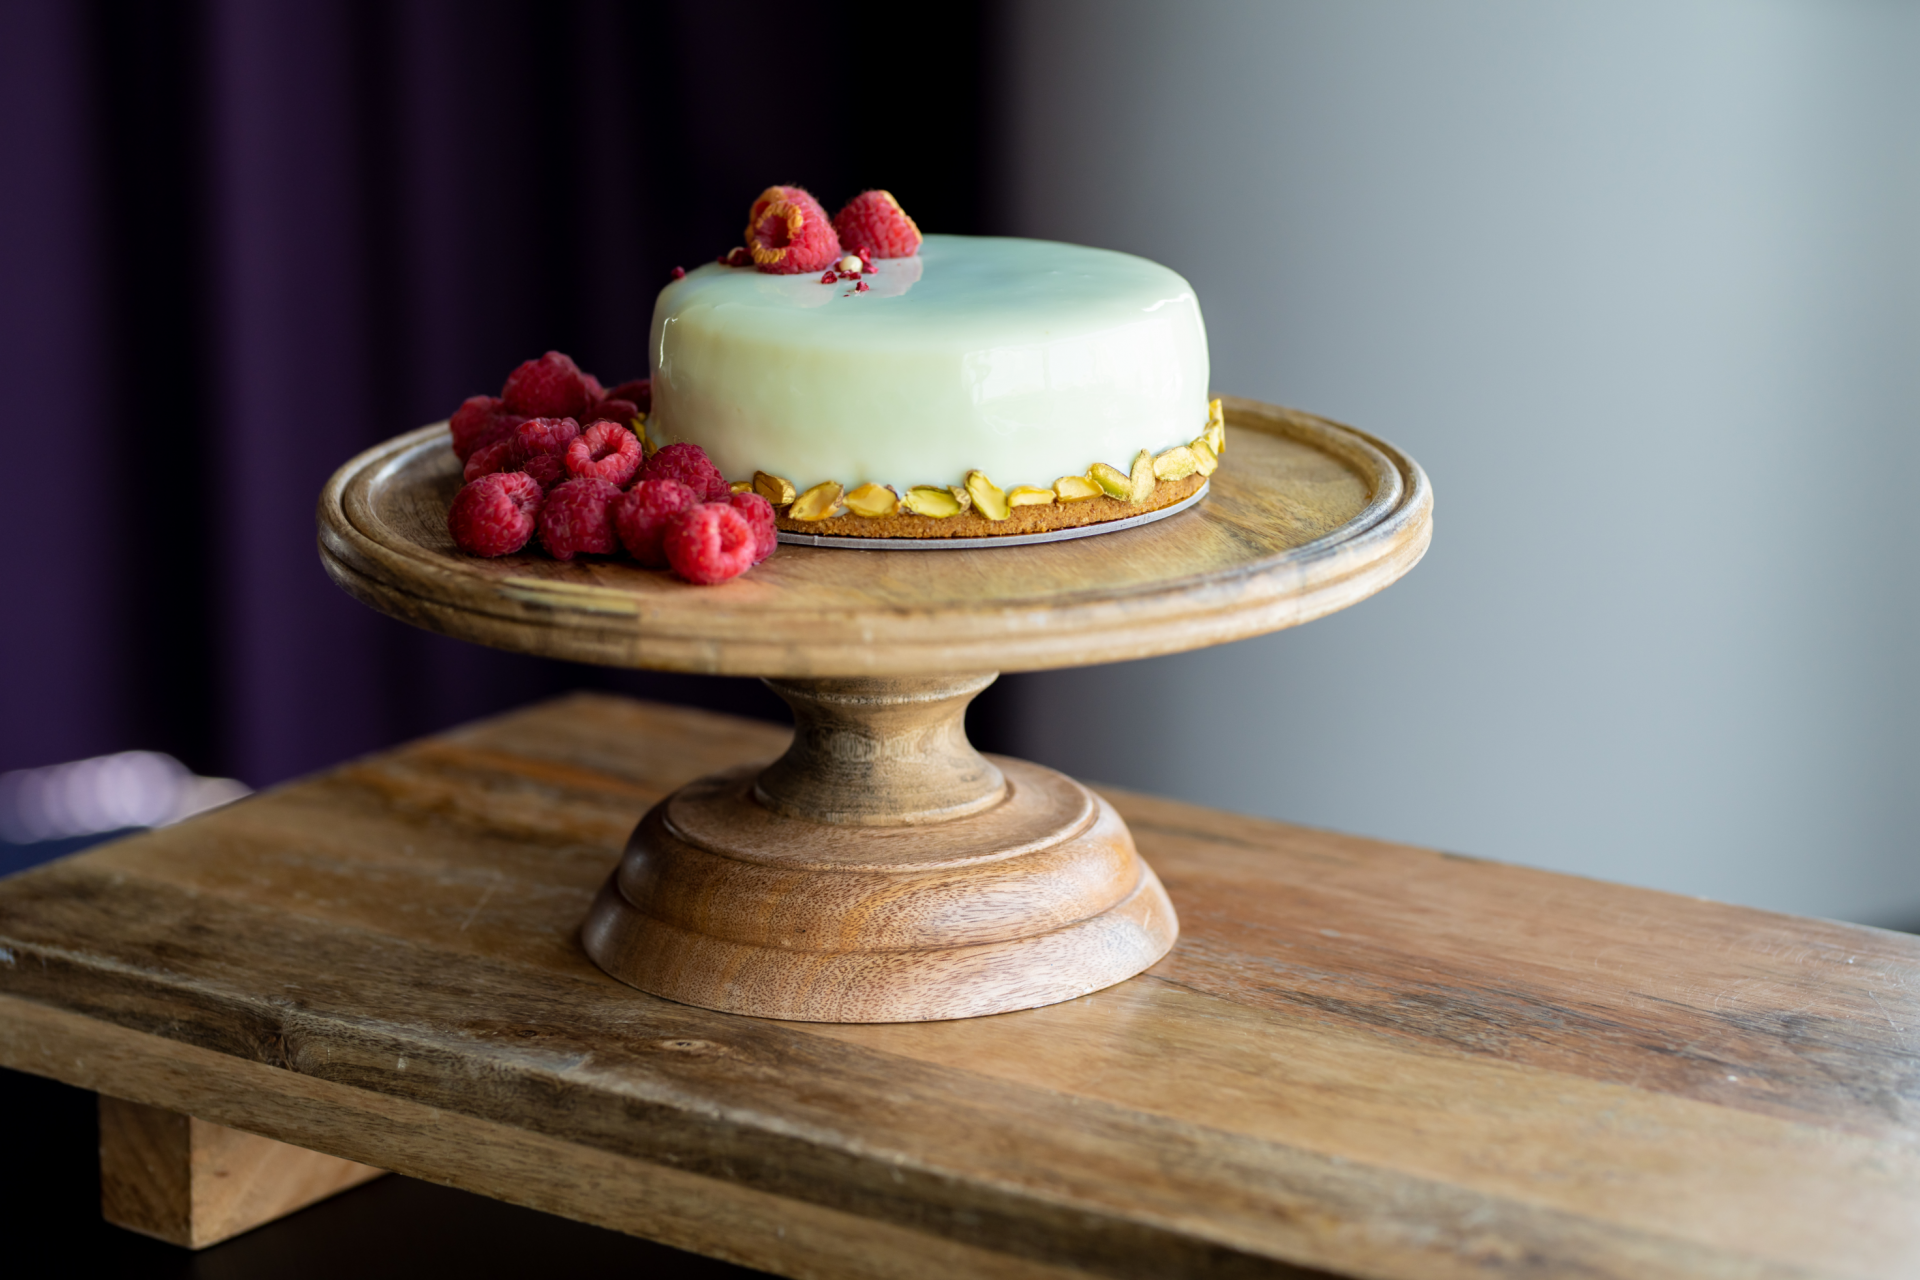 a pistachio cheesecake displayed on a wooden cake plate garnished with fresh raspberries and pistachios